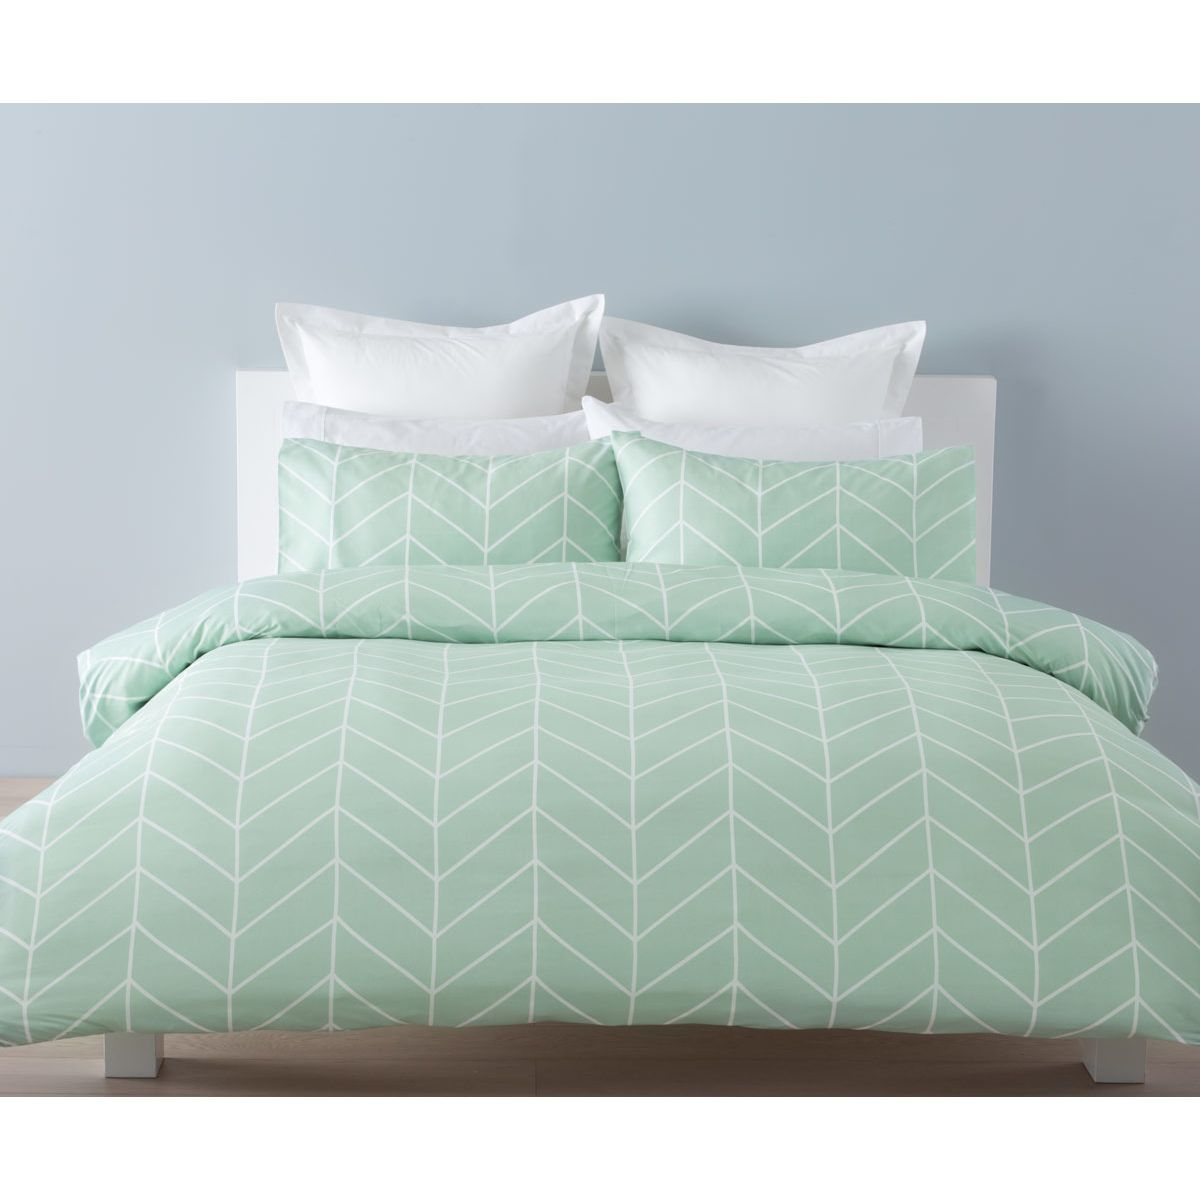 Ava Quilt Cover Set Queen Bed Kmart Quilt Cover Sets